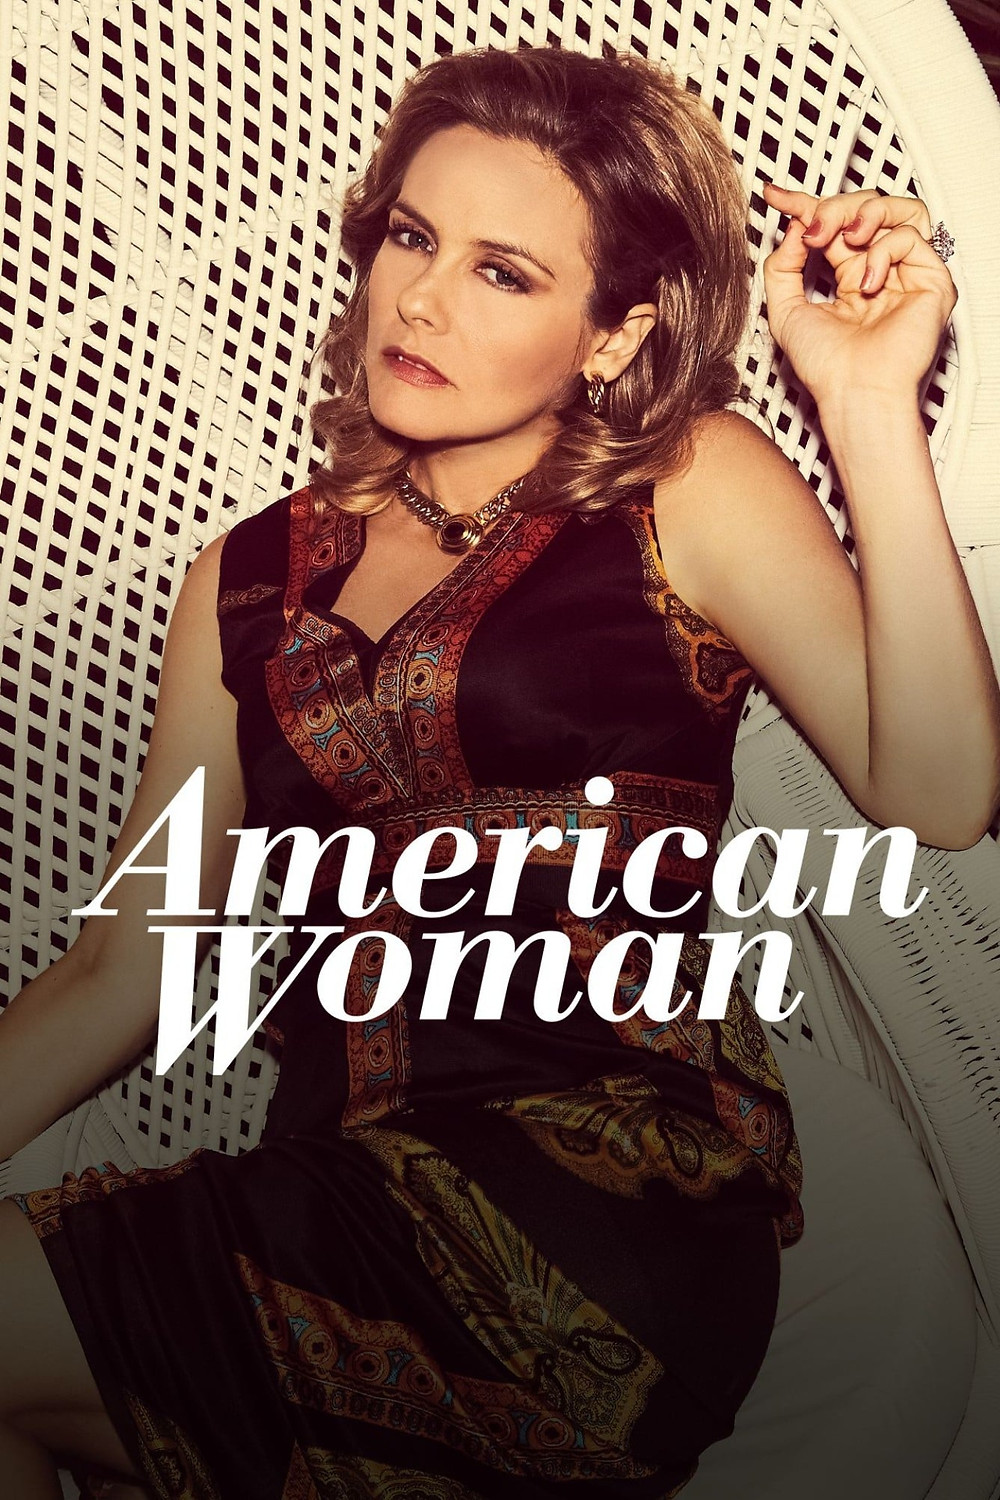 Alicia Silverstone as Bonnie in American Woman TV Show Licensing Brazilian Bossa Nova Music by Monica da Silva